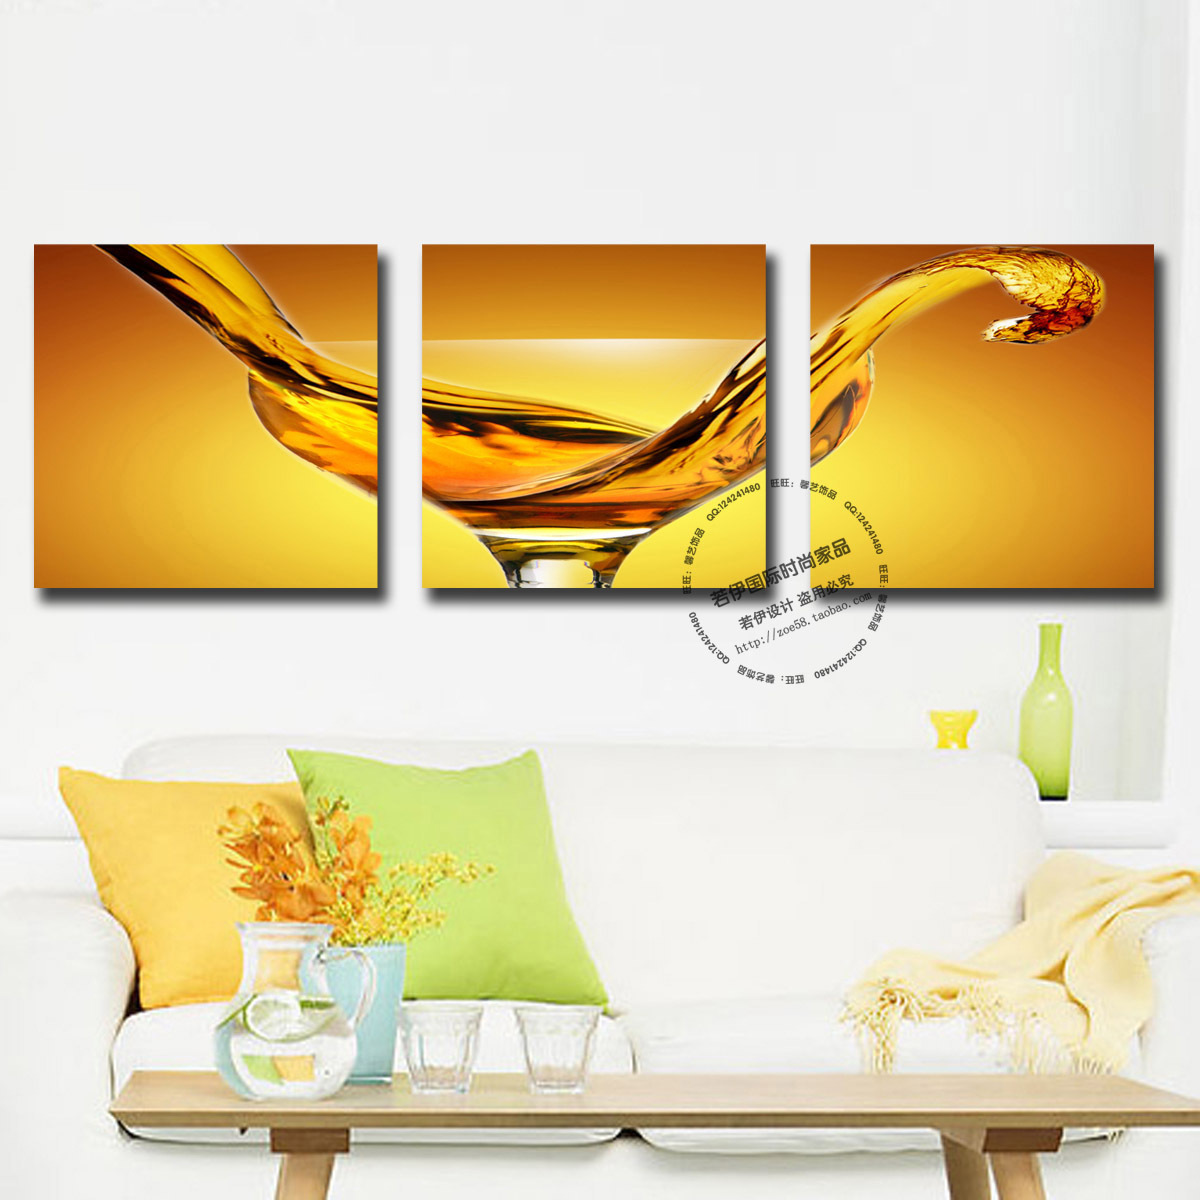 shop popular frameless glass picture frames from china